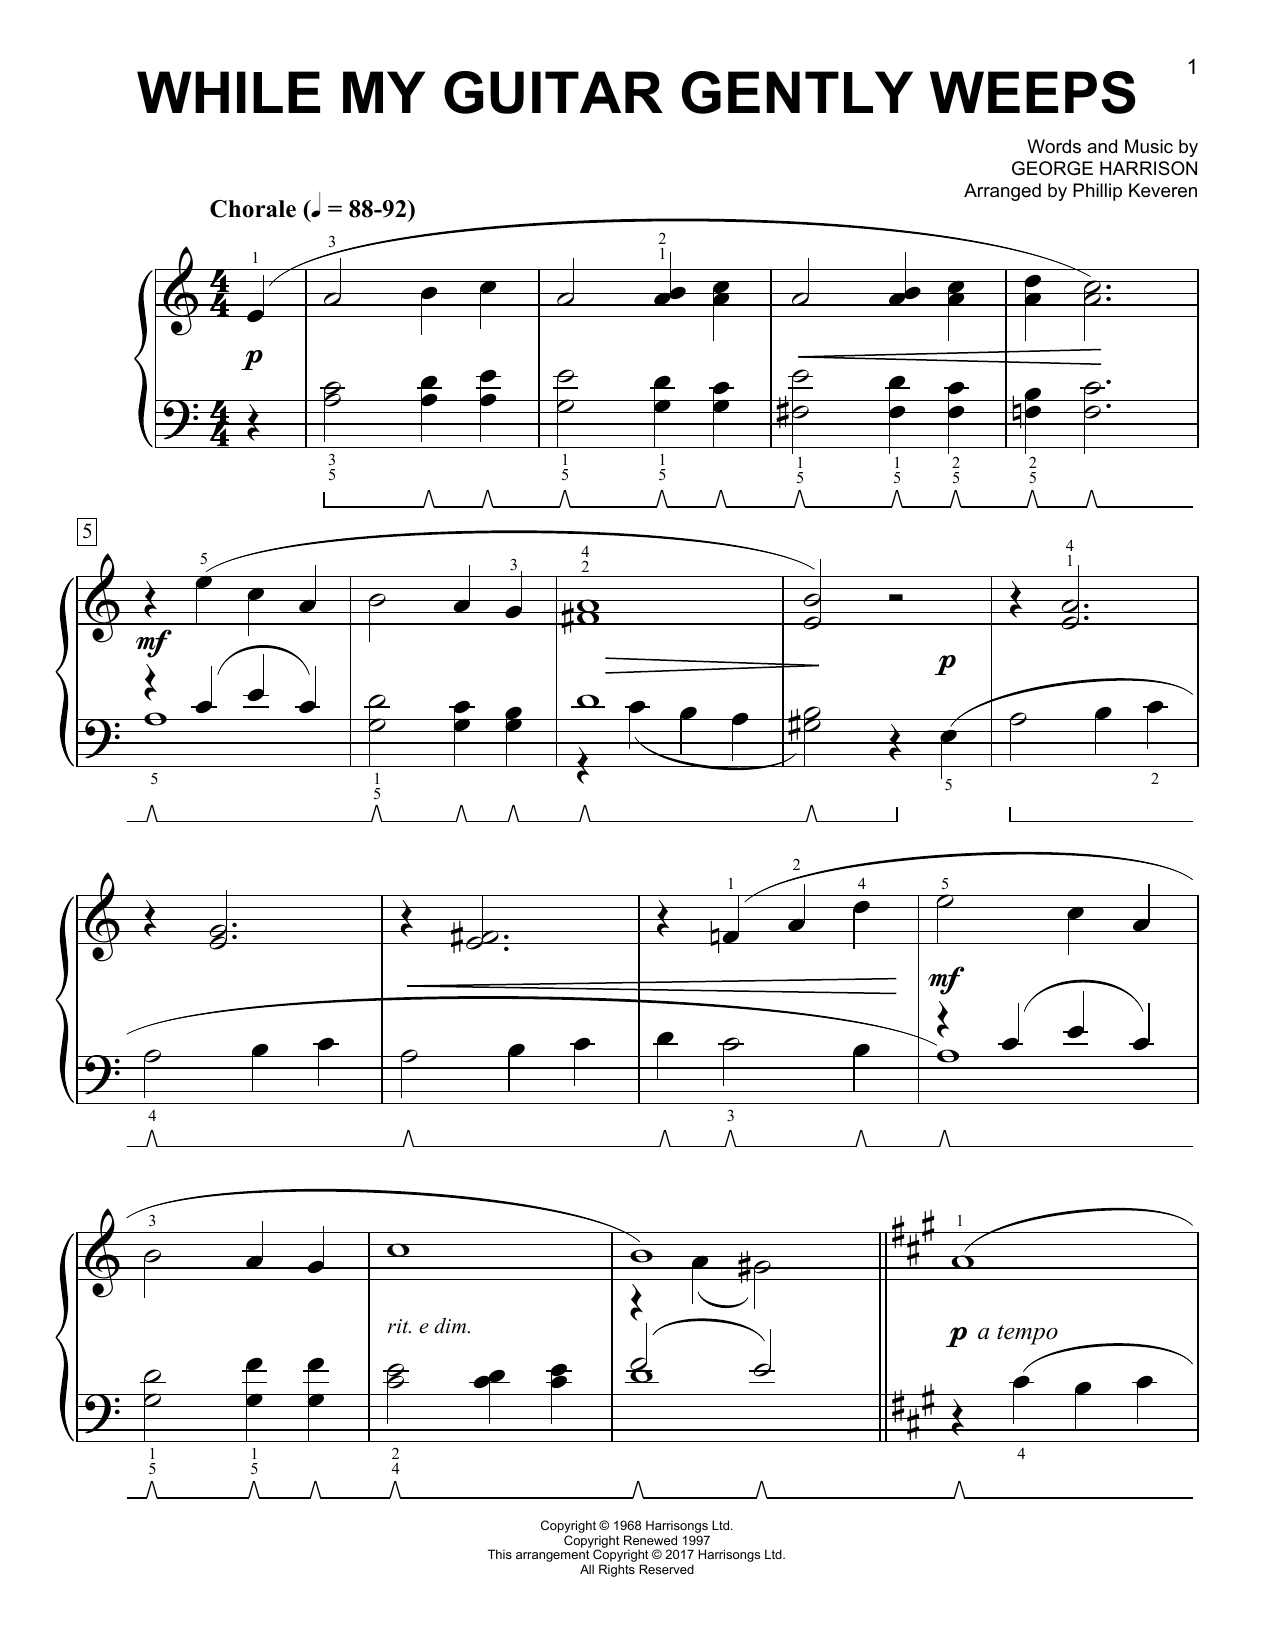 The Beatles While My Guitar Gently Weeps [Classical version] (arr. Phillip Keveren) sheet music notes and chords. Download Printable PDF.